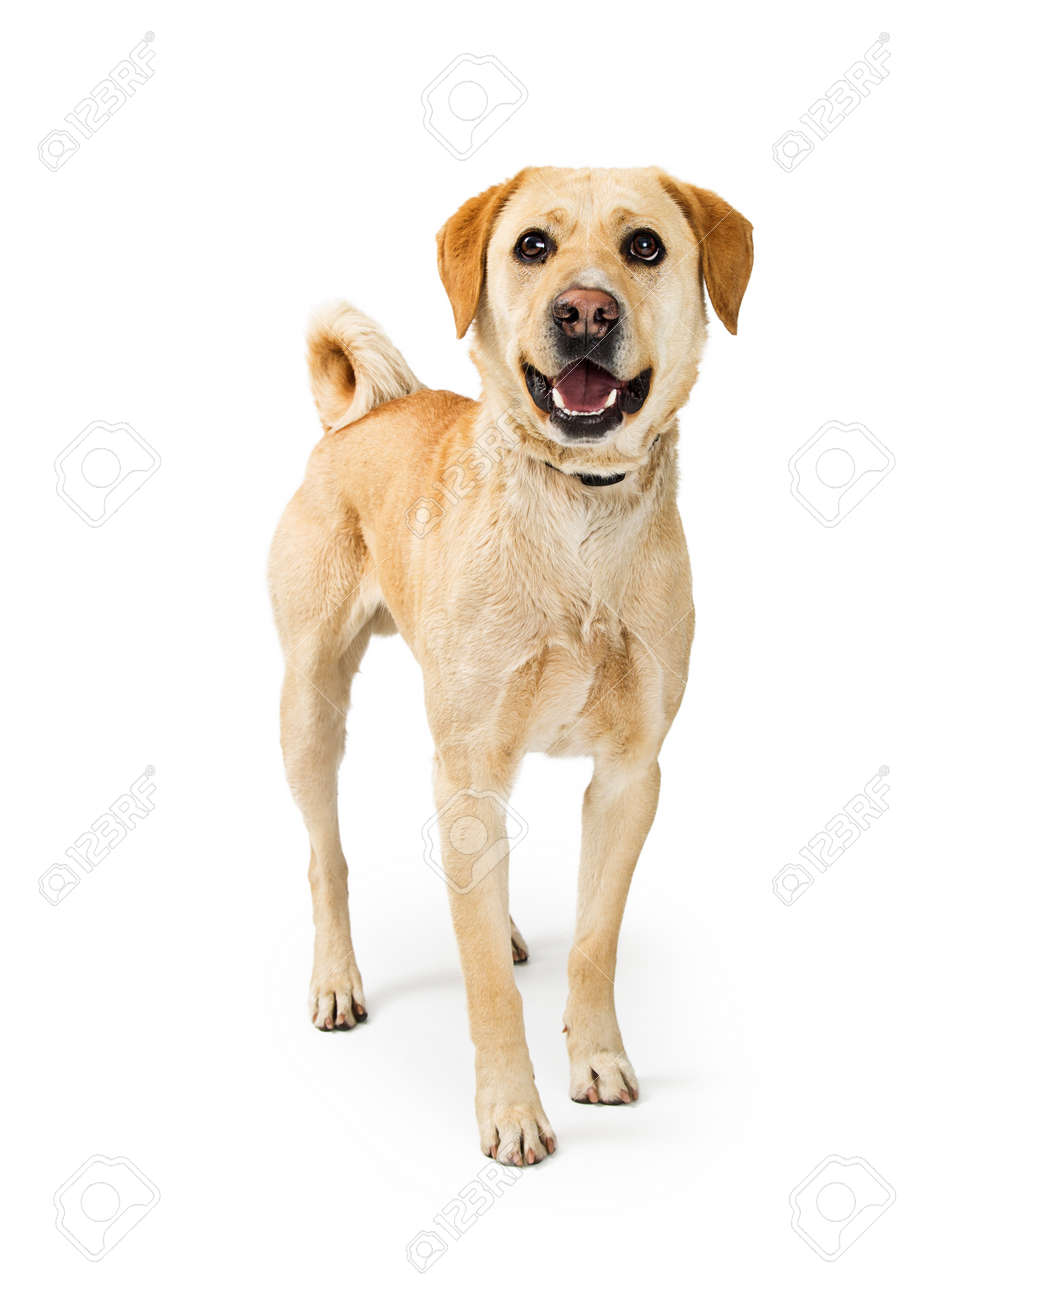 Happy and smiling medium size Labrador Retriever crossbreed dog standing on a white background and looking at camera - 100972219